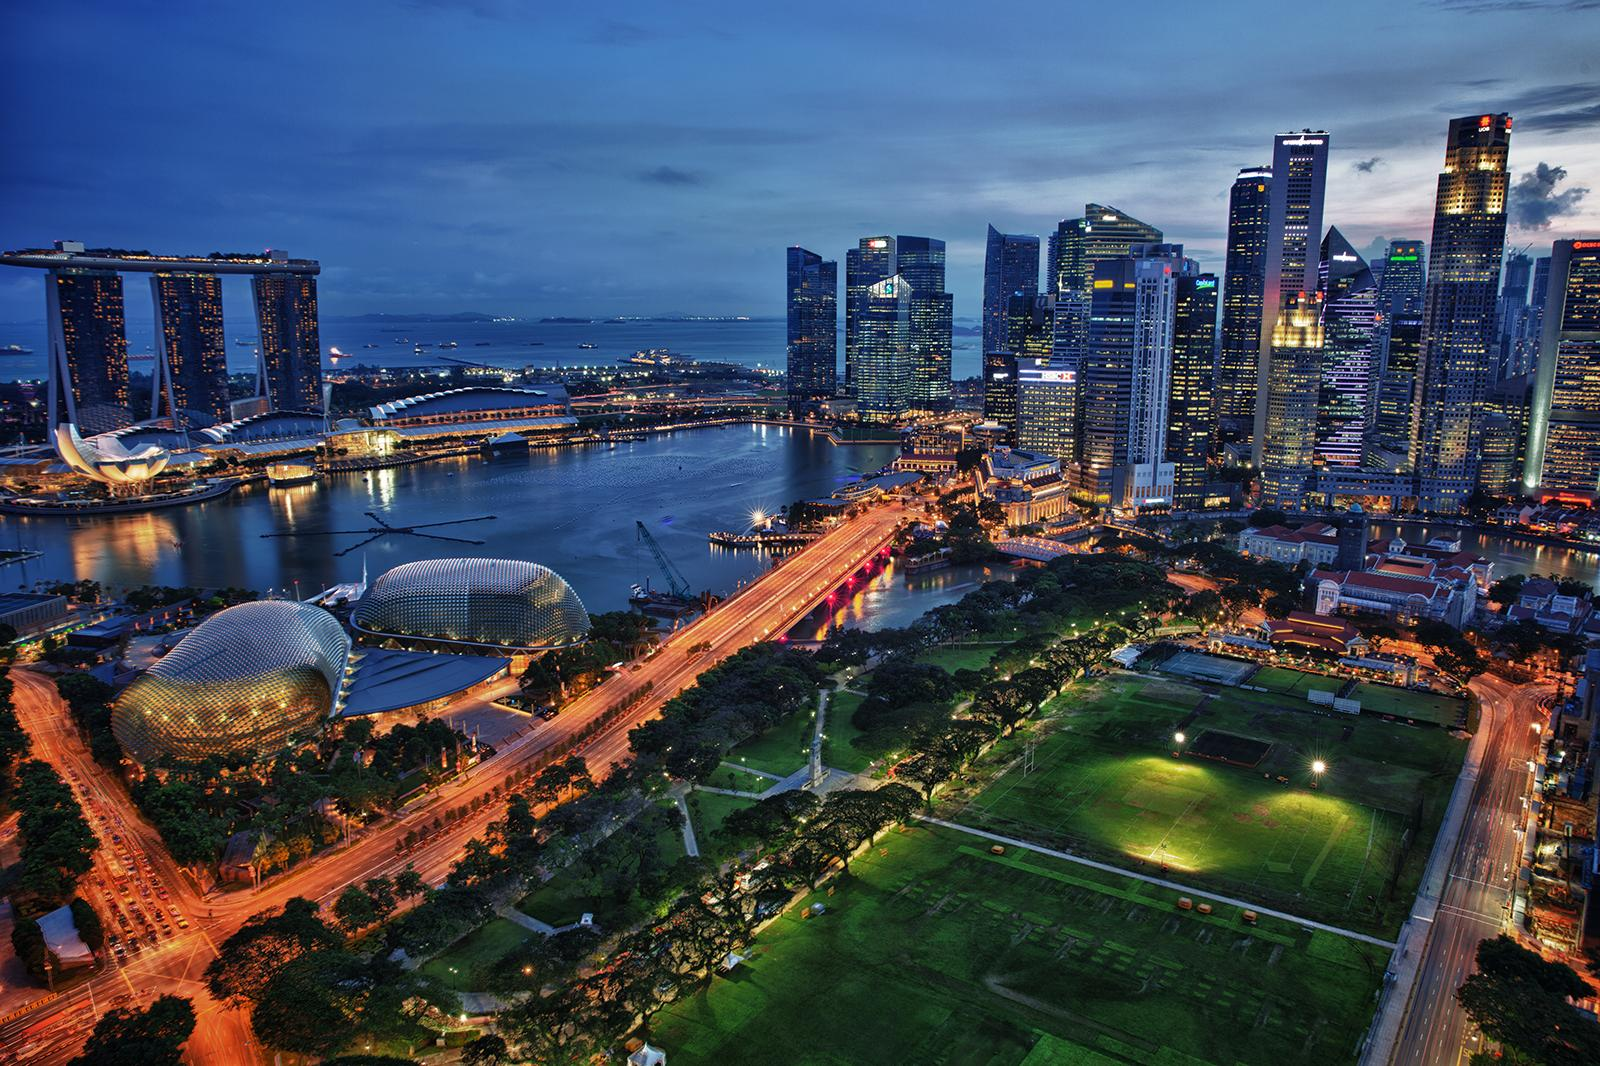 Futuristic city: How the Singapore skyline changed over the past decade